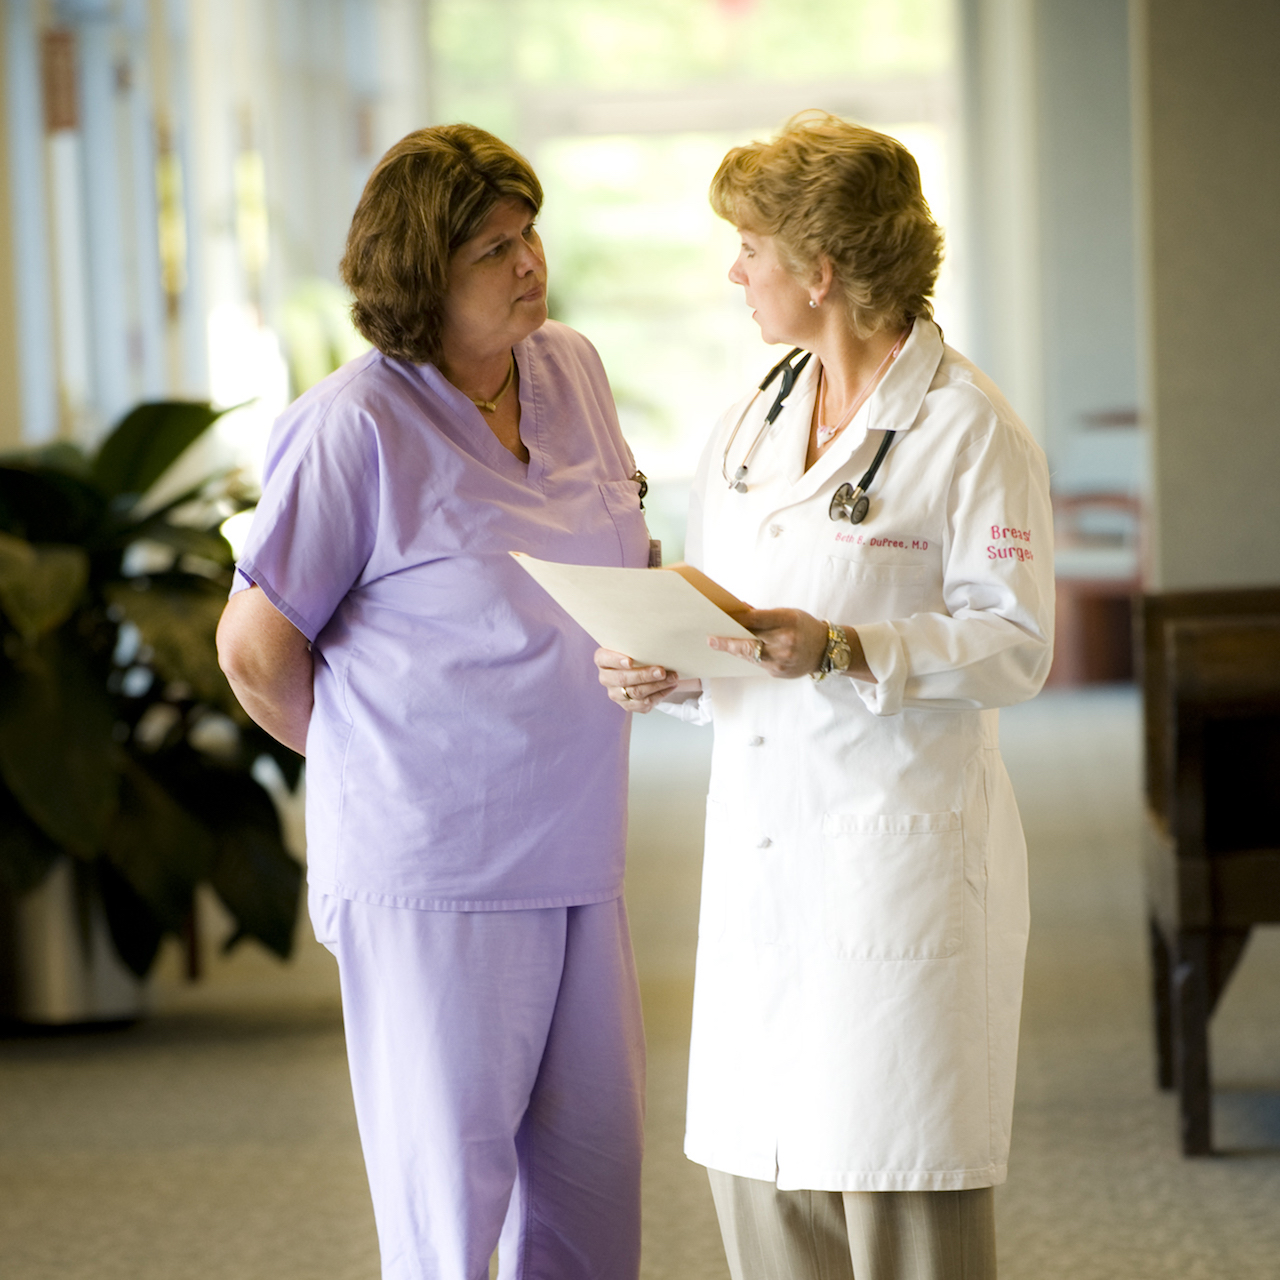 A physician and nurse are speaking to one another in a PHP participating provider facility.